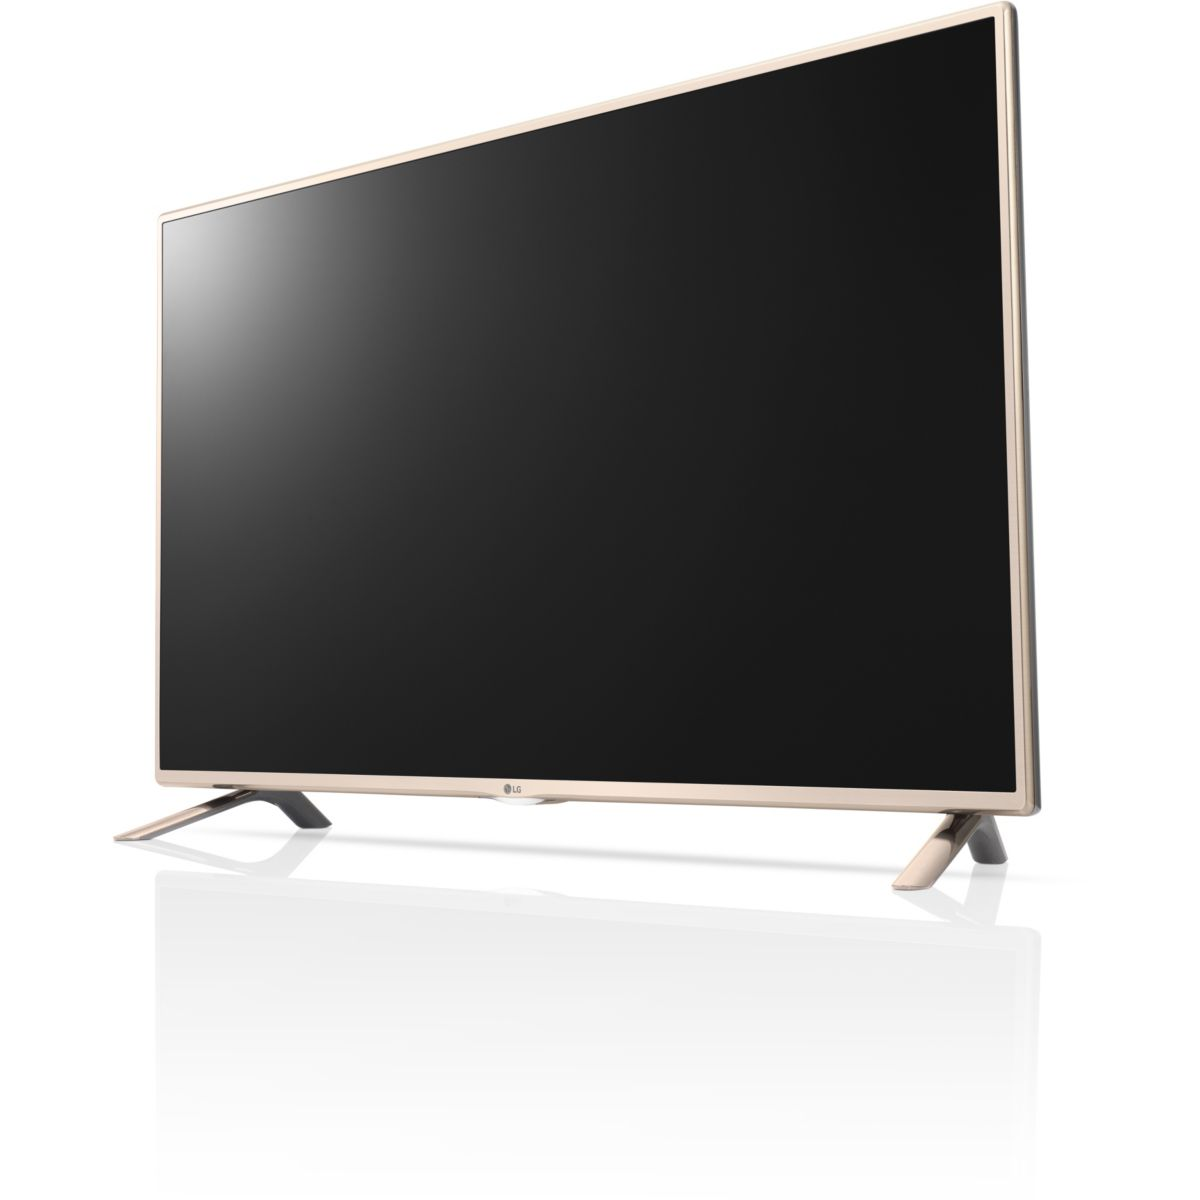 lg 32lf5610 t l viseur led 81 cm comparer avec. Black Bedroom Furniture Sets. Home Design Ideas